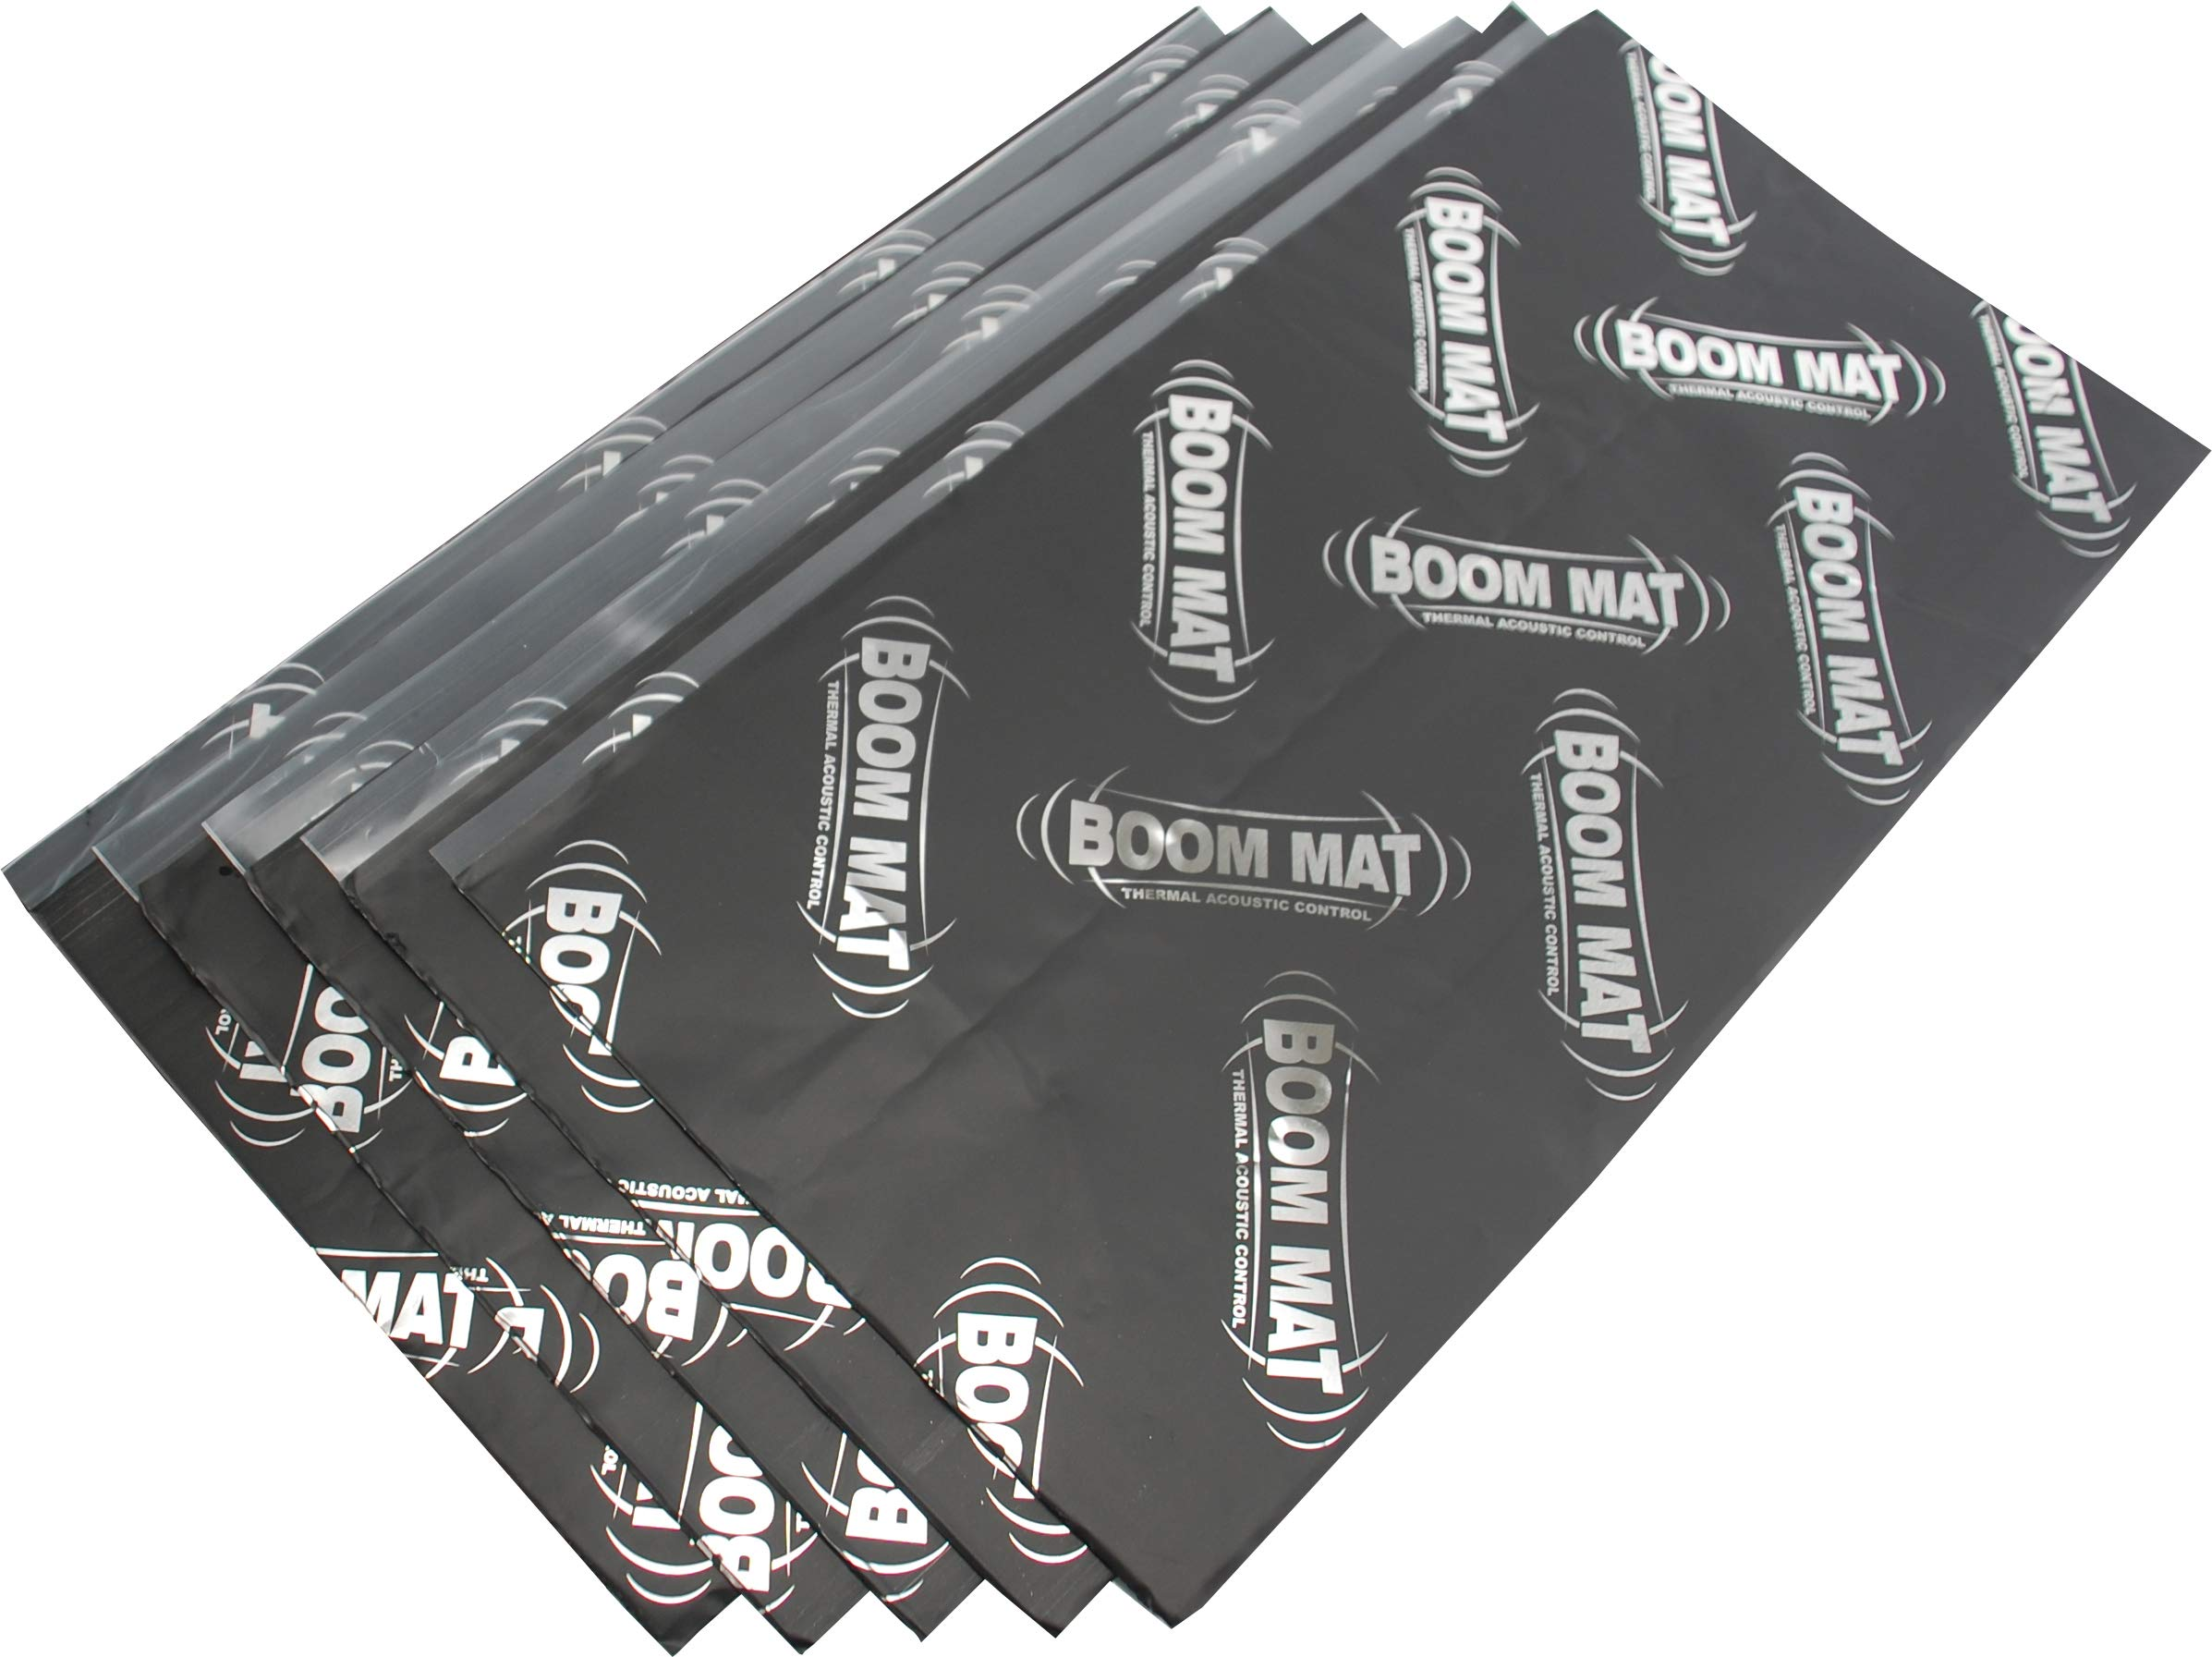 "Design Engineering 050223 Boom Mat XL 12.5"" x 24"" (10 Sheets) 4mm Damping Material"